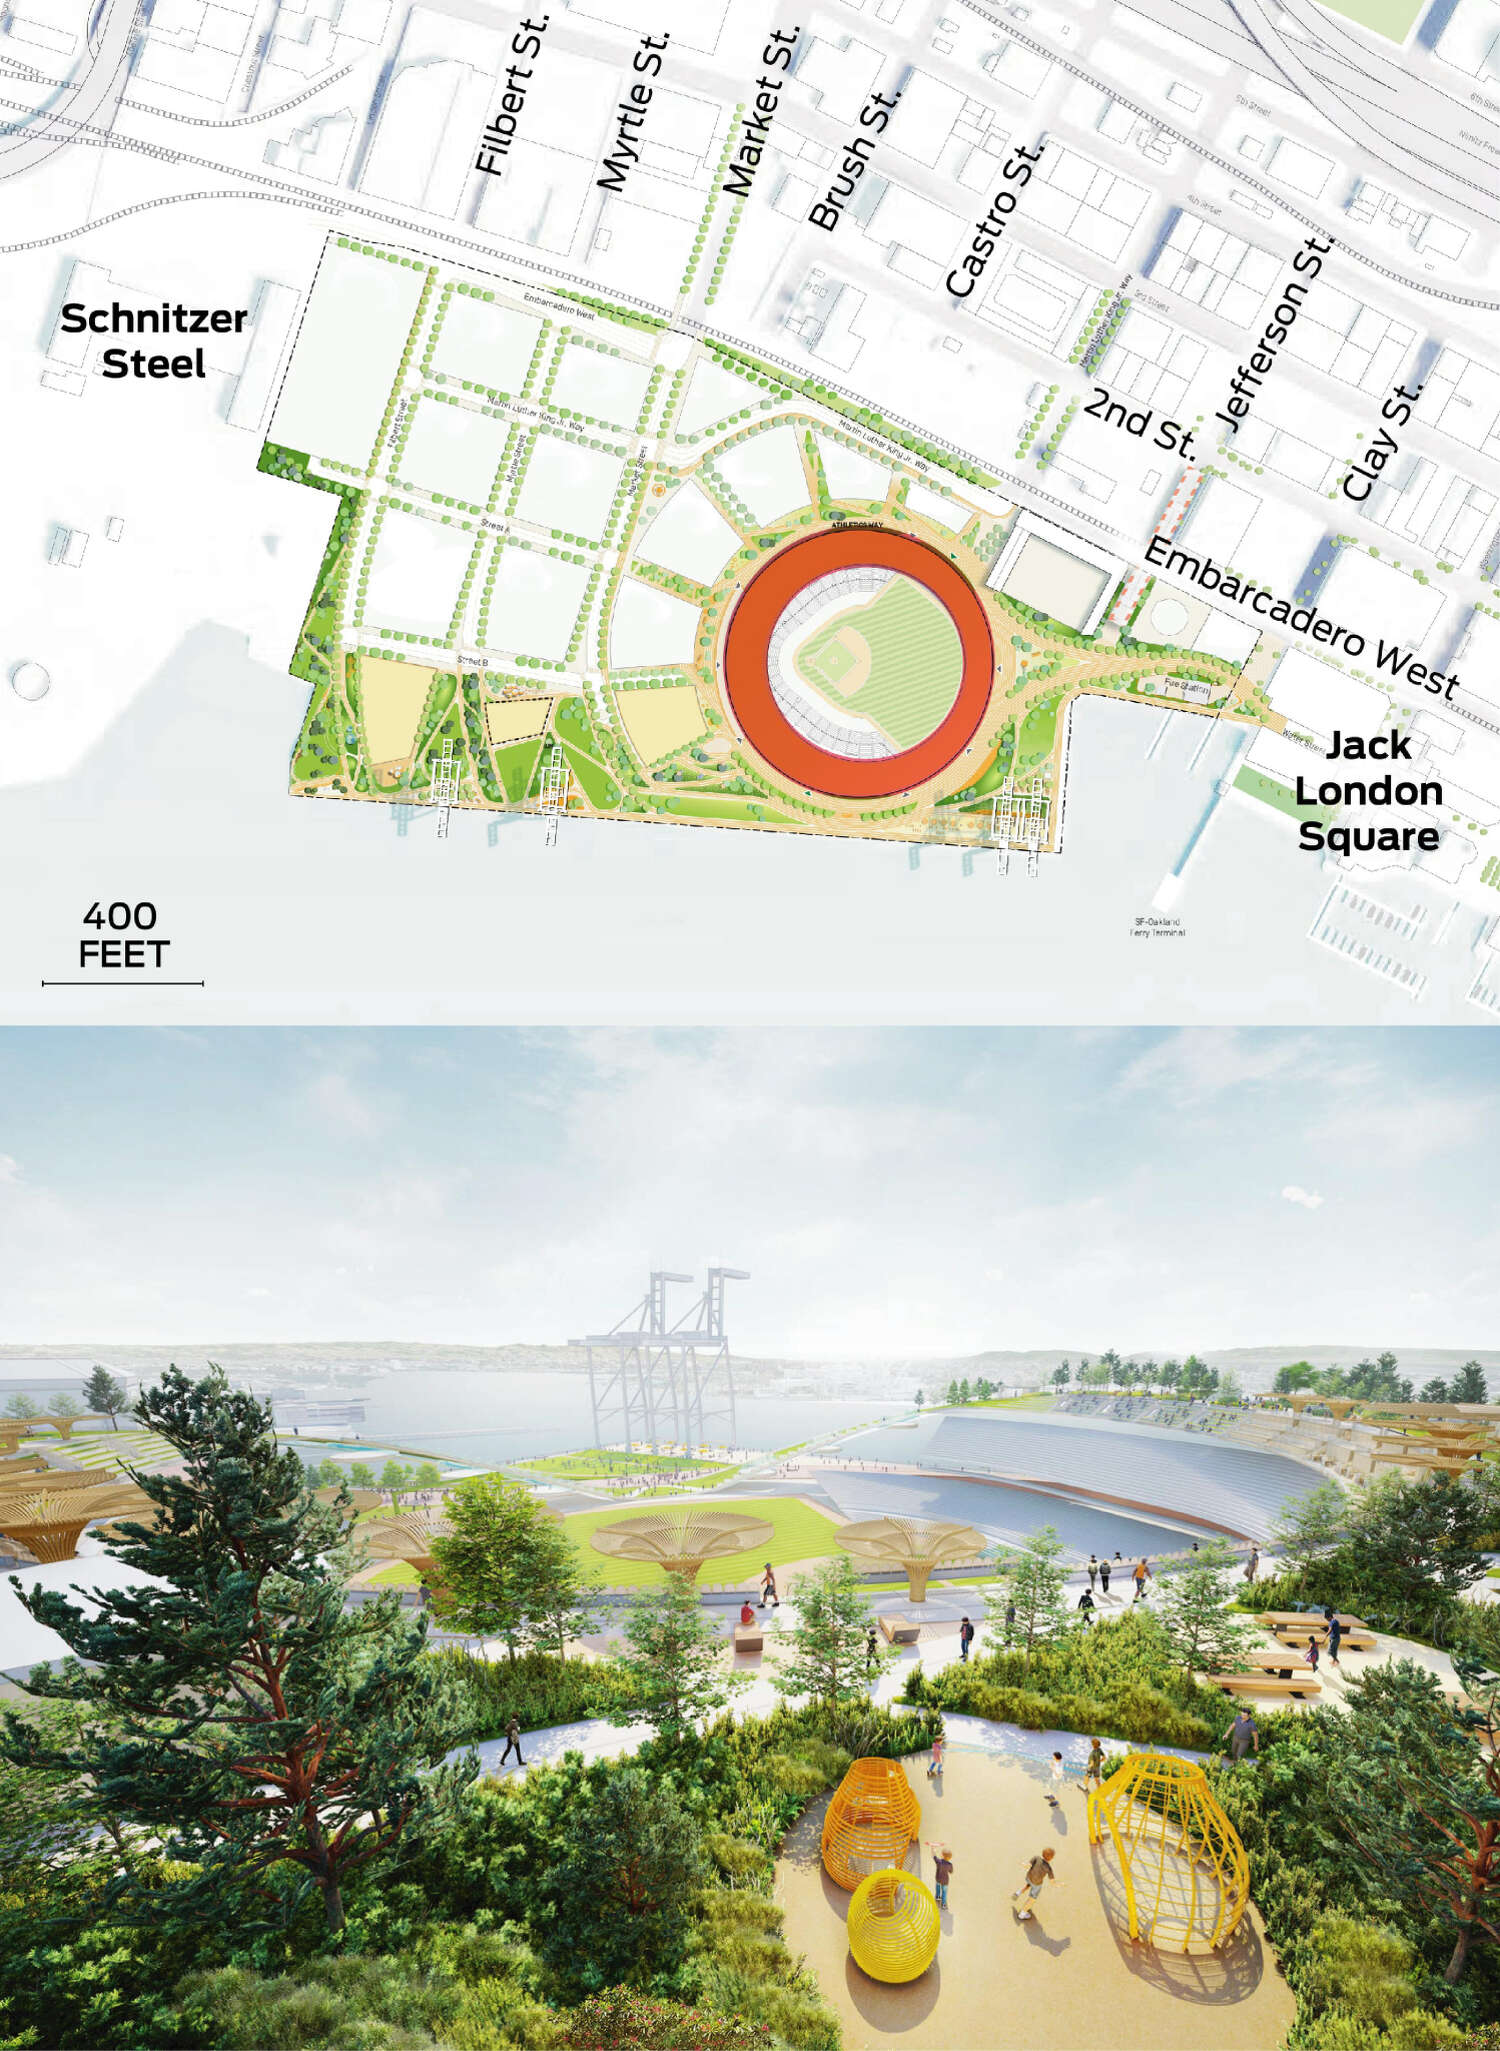 The upper area encircling the ballpark is highlighted on the map. A rendering depicts the area.